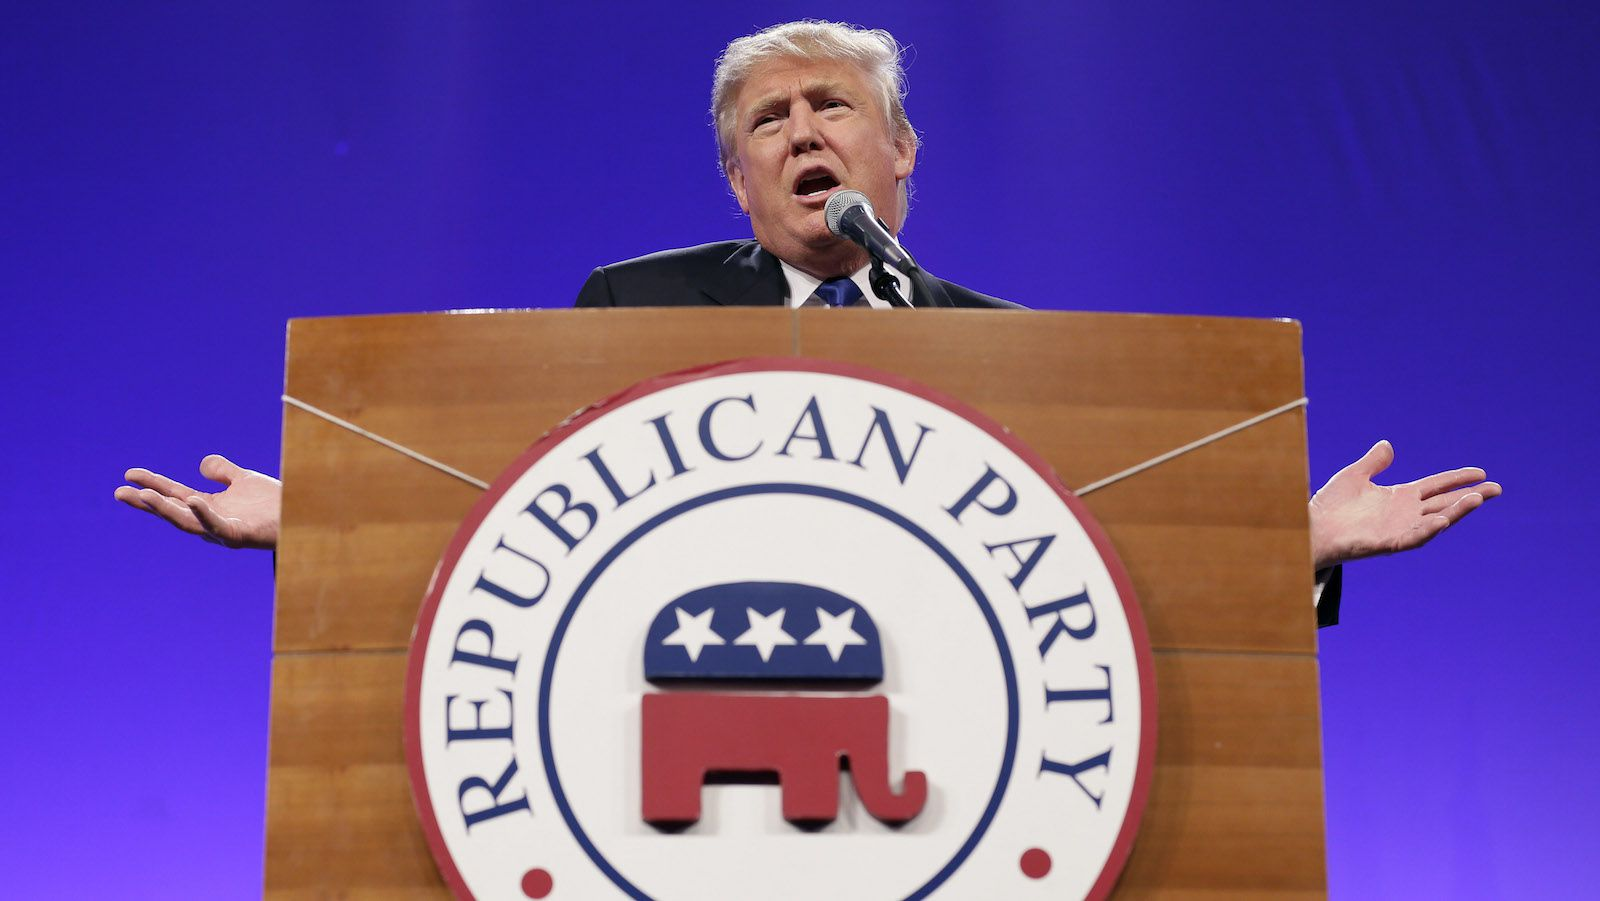 Donald Trump speaks during the Iowa Republican Party's Lincoln Dinner, Saturday, May 16, 2015, in Des Moines, Iowa.